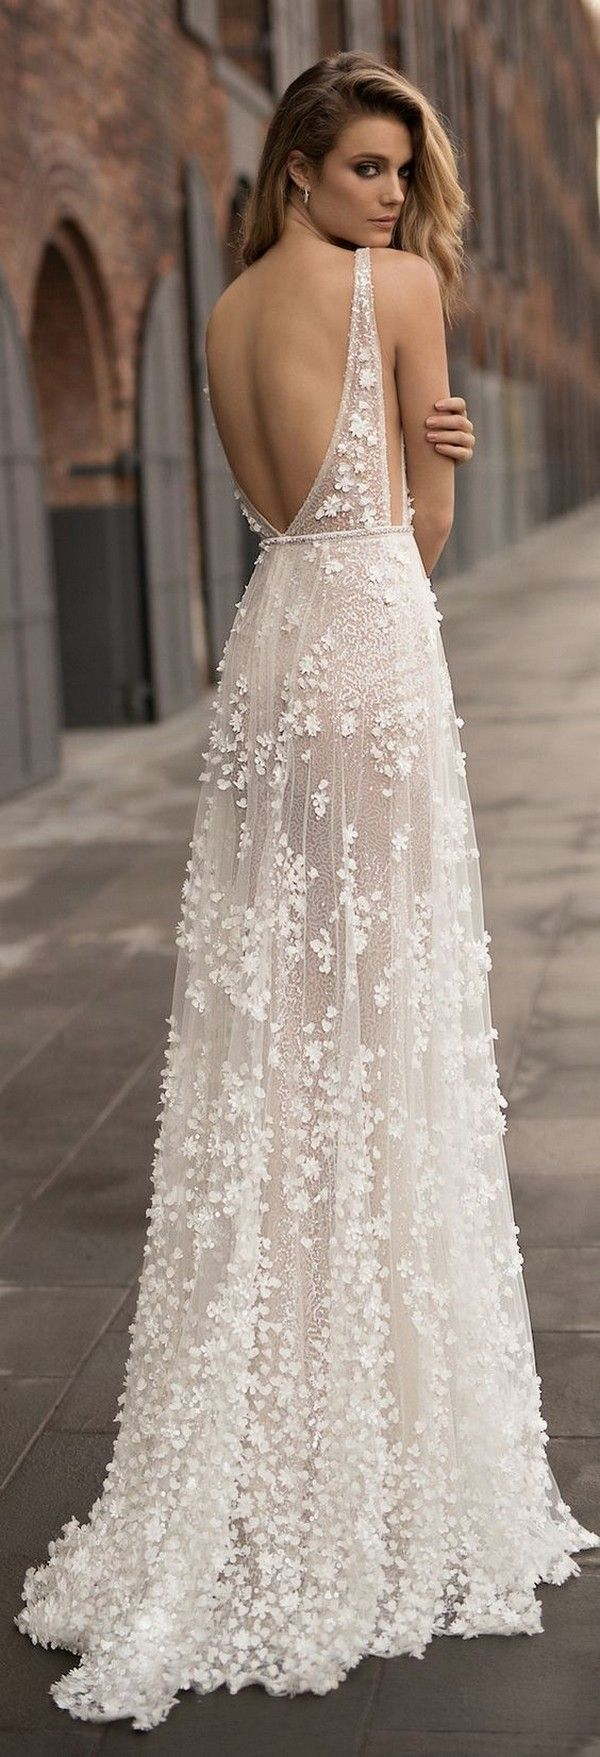 Berta boho wedding dress weddingdresses weddingdress